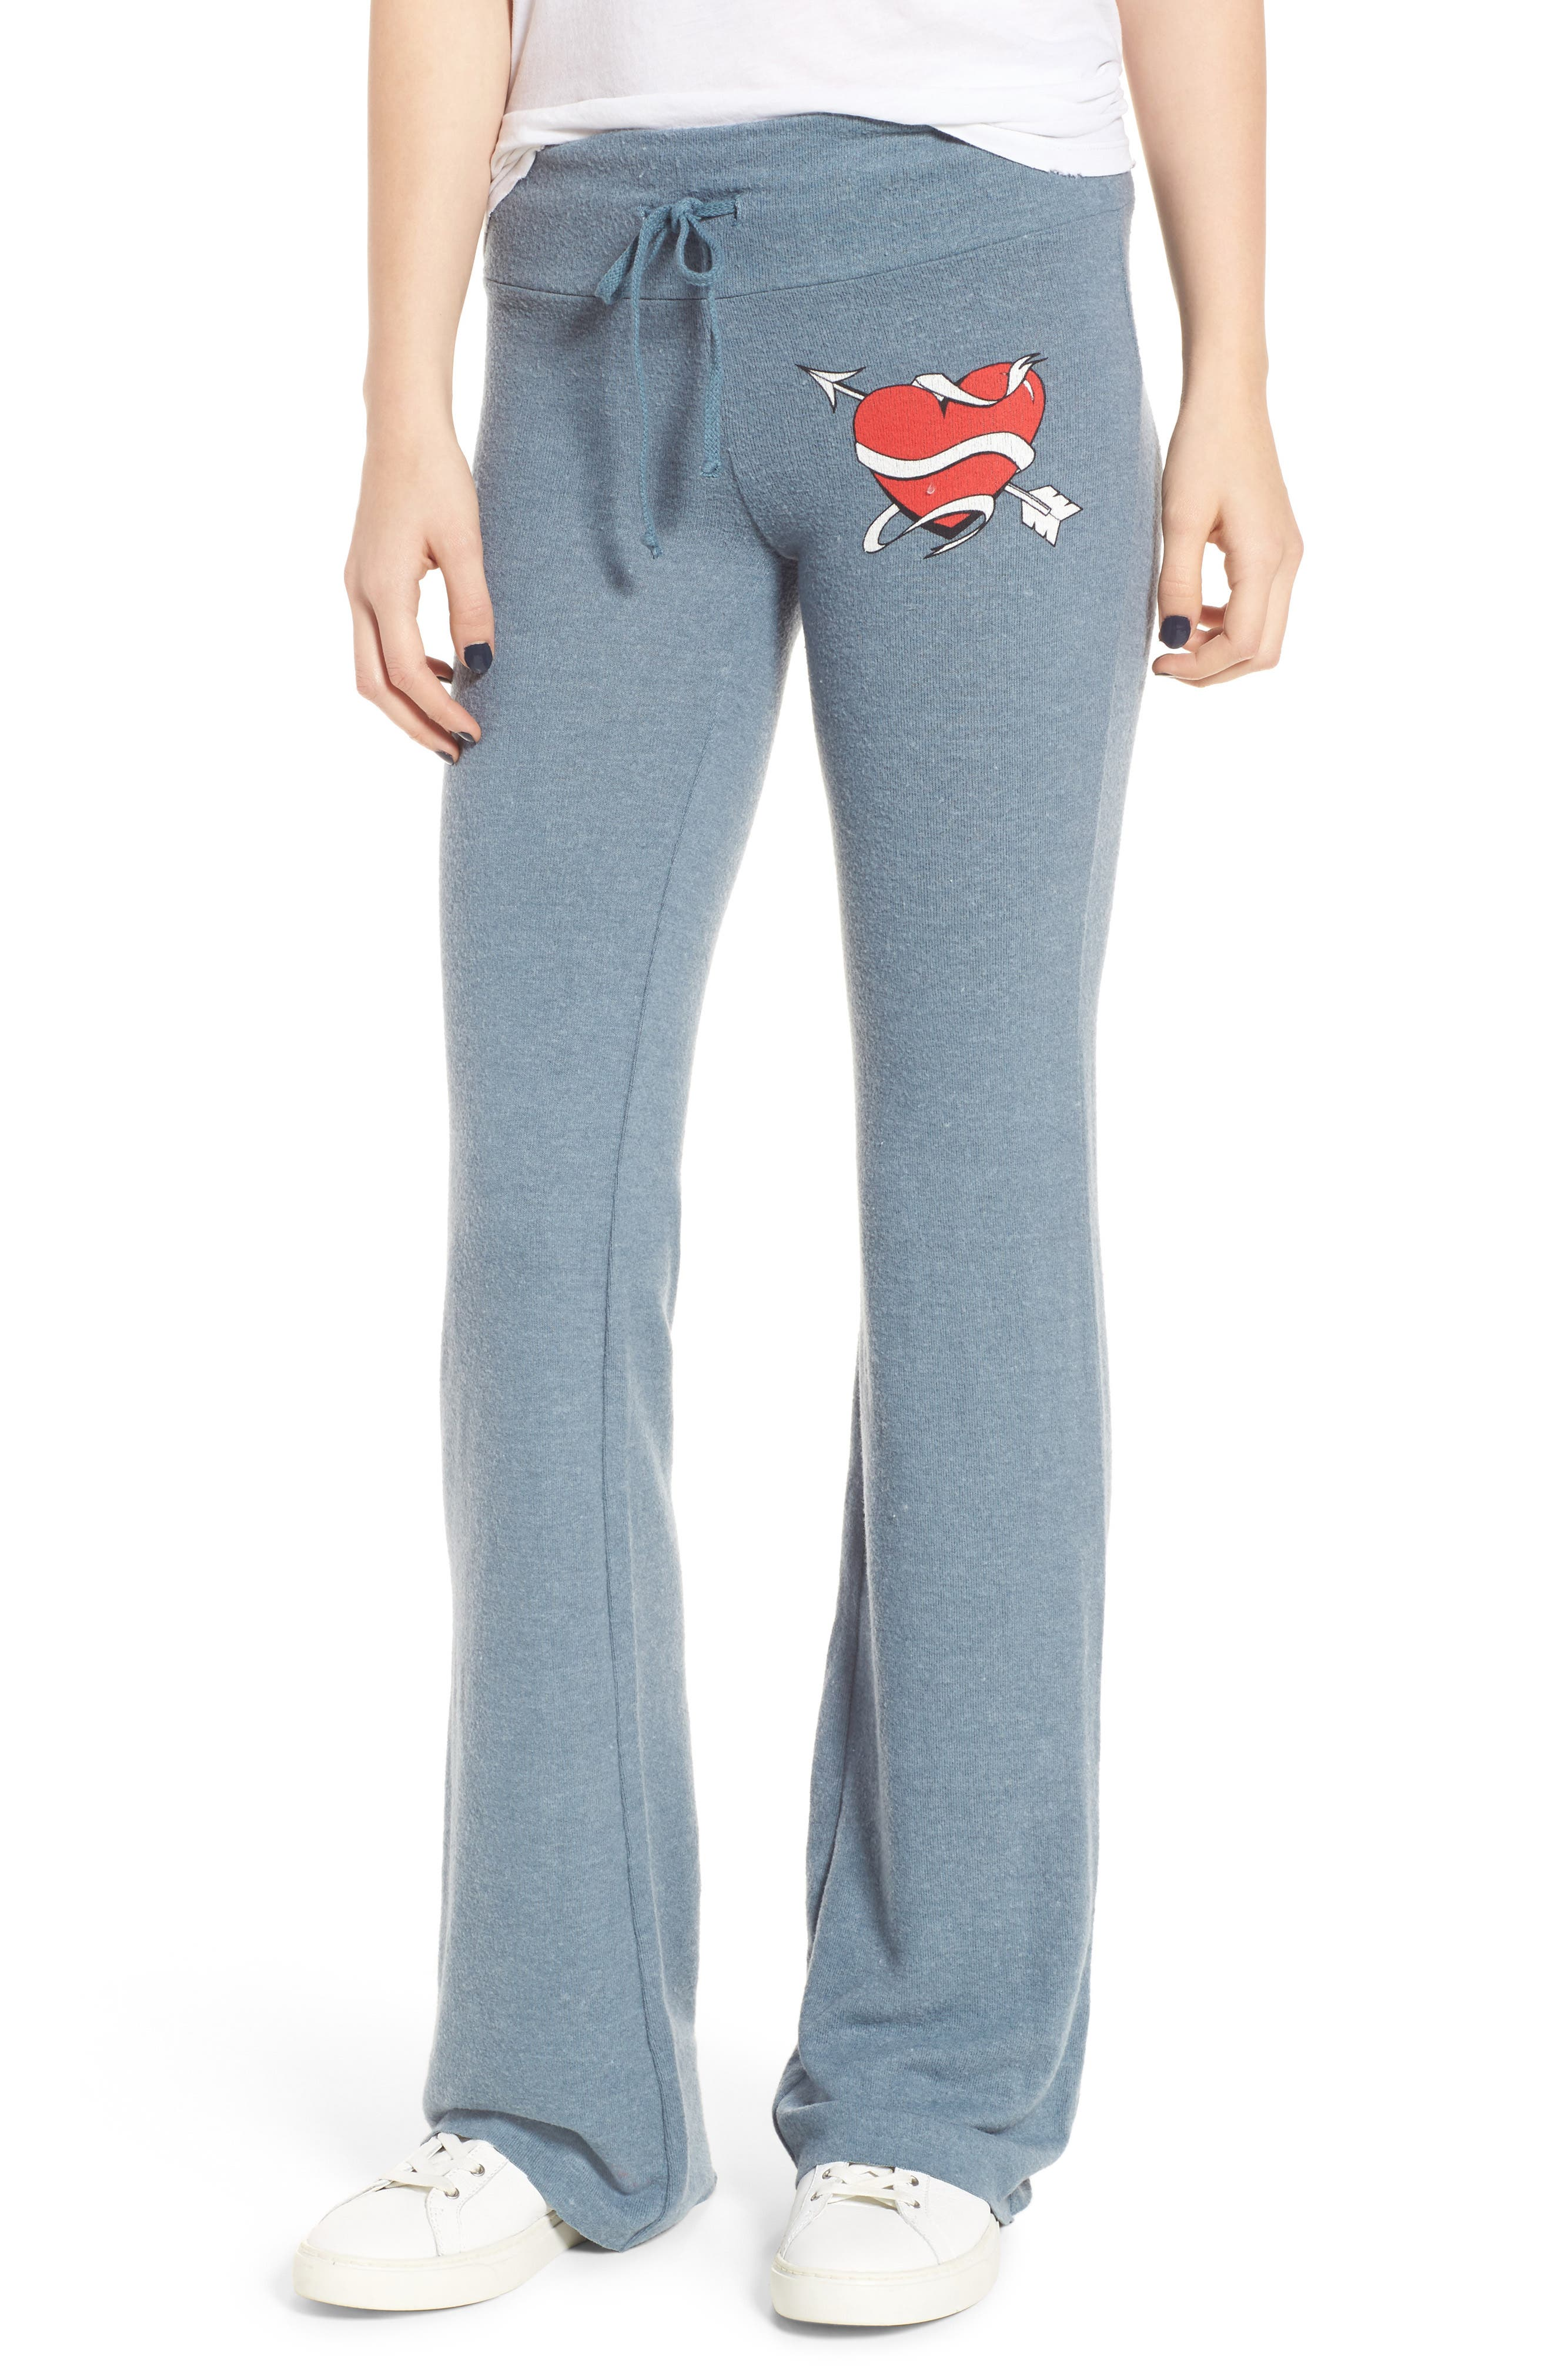 Heart & Arrows Sweatpants,                             Main thumbnail 1, color,                             402